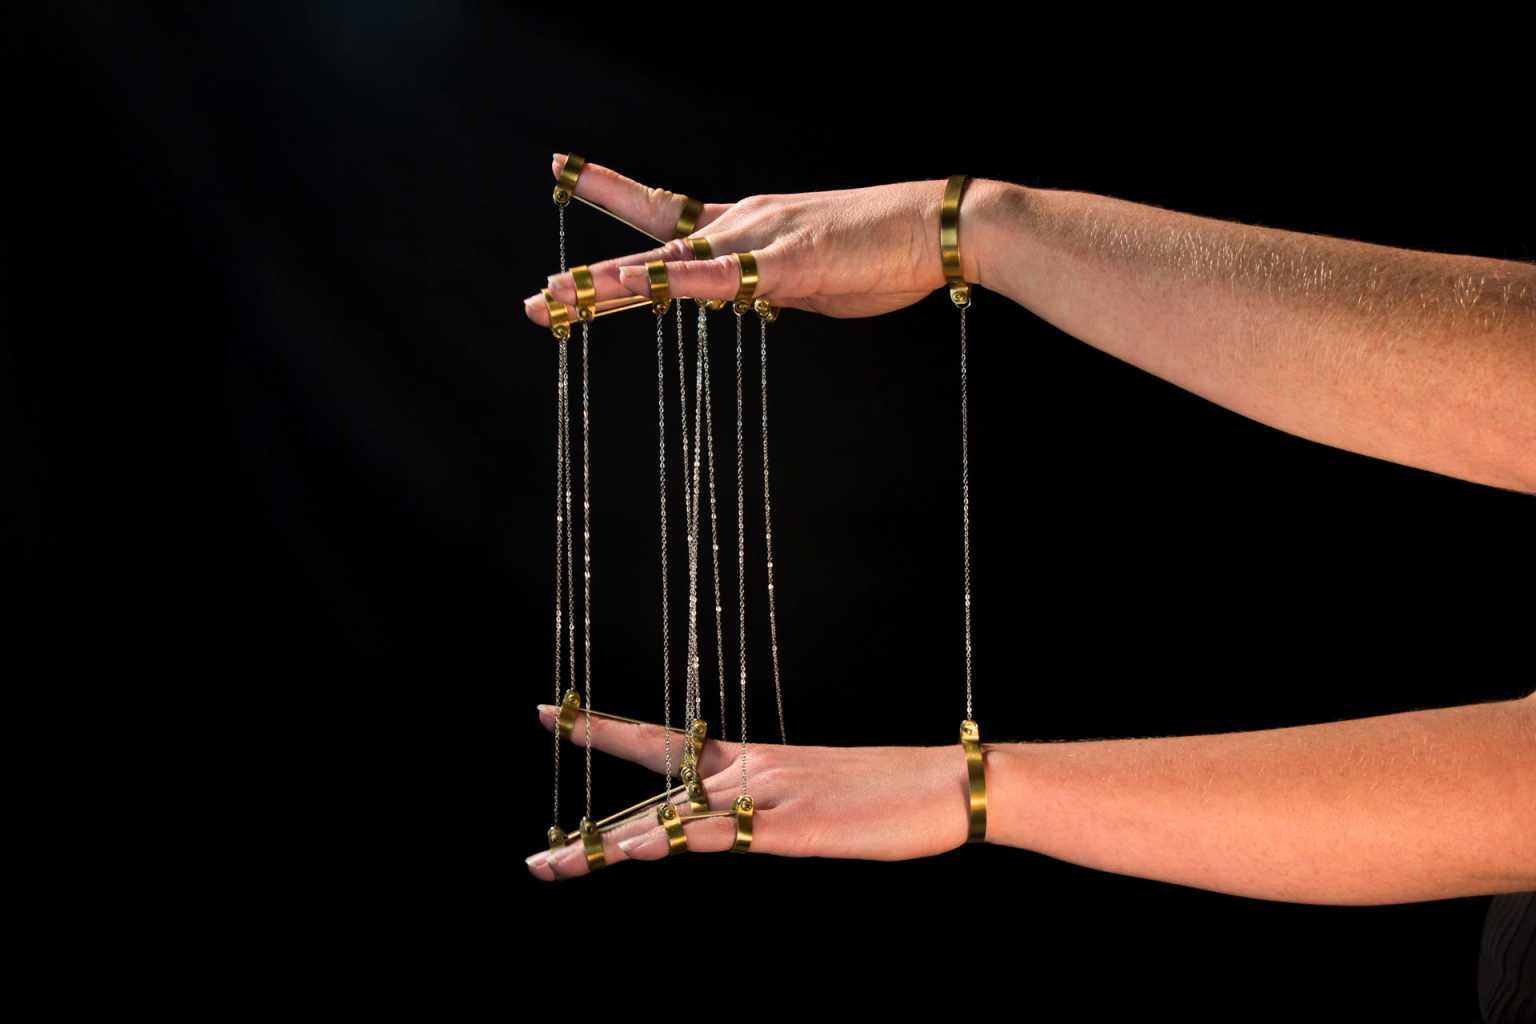 Breaching Tool No. 2: Tether by Thorn Collaborative (Erin Ethridge and Colleen Marie Foley)